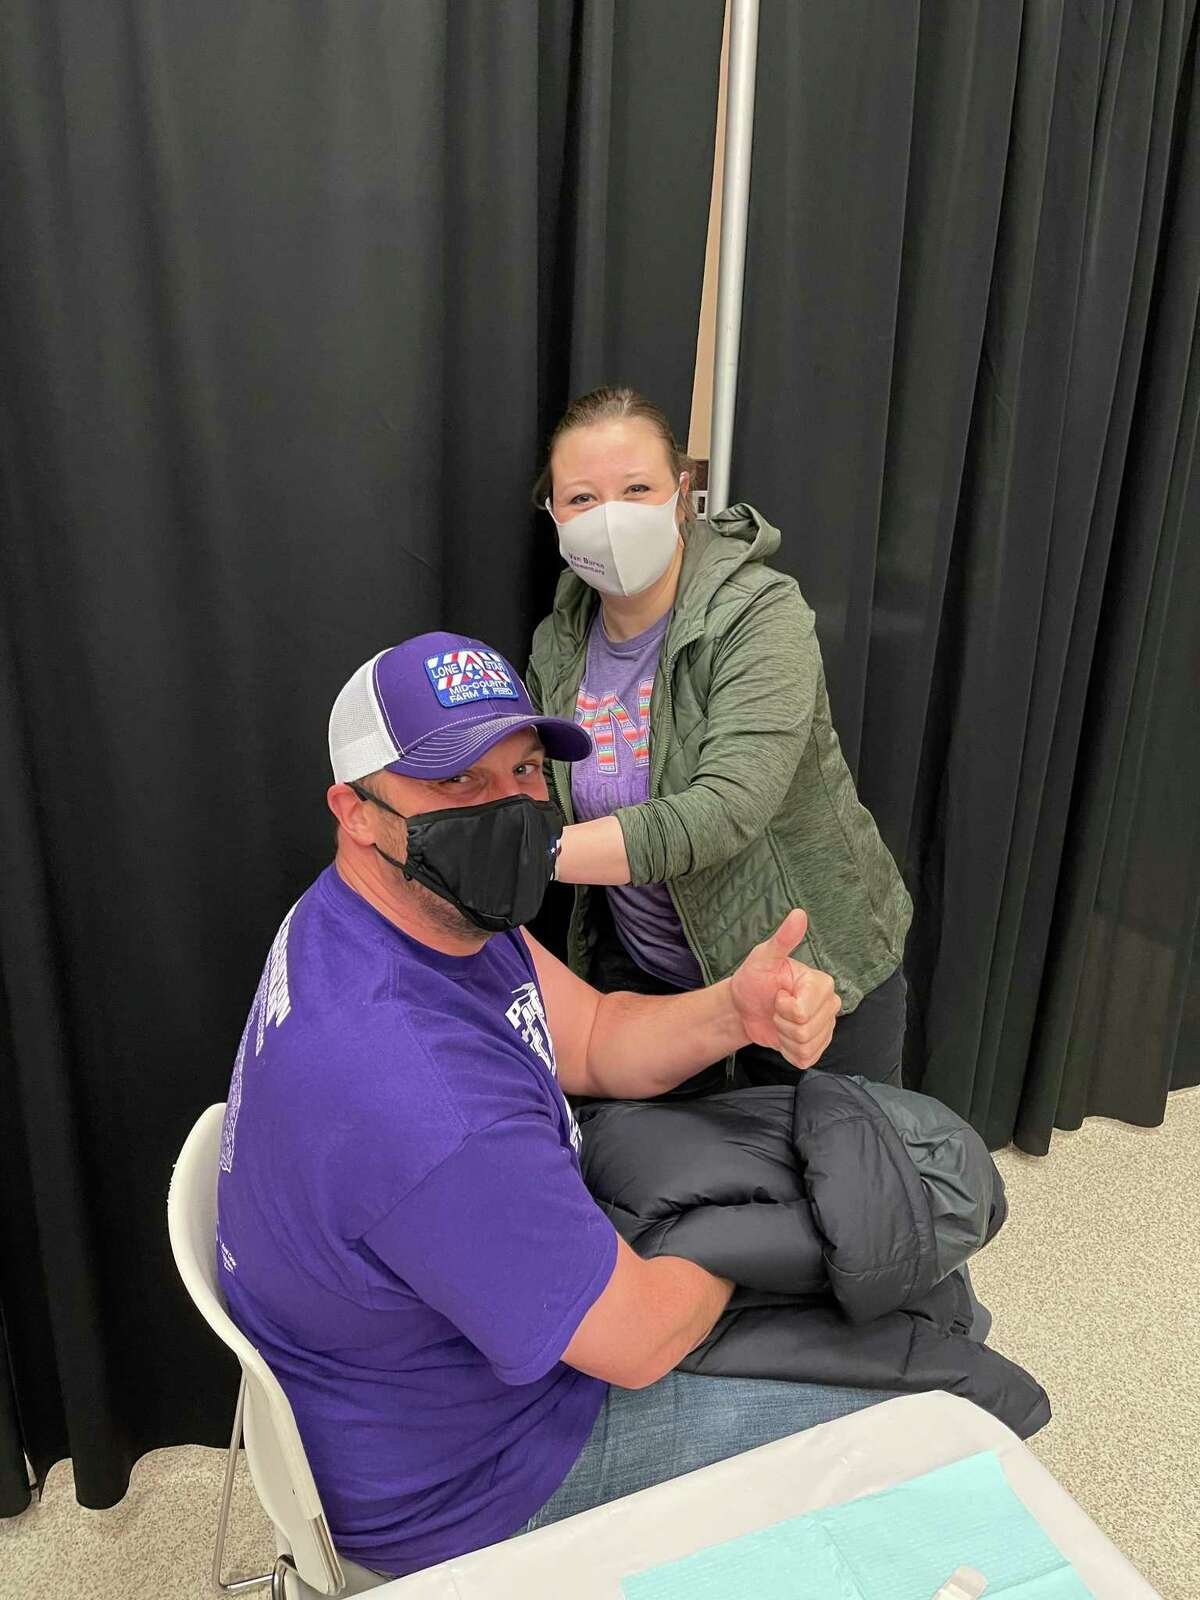 PN-G coach and teacher Charlie Feller receives the Moderna Coronavirus vaccine from Nurse Lauren Ward. The district delayed a vaccine drive due to the ice storm, but were able to proceed during a small break in freezing temperatures on Wednesday.